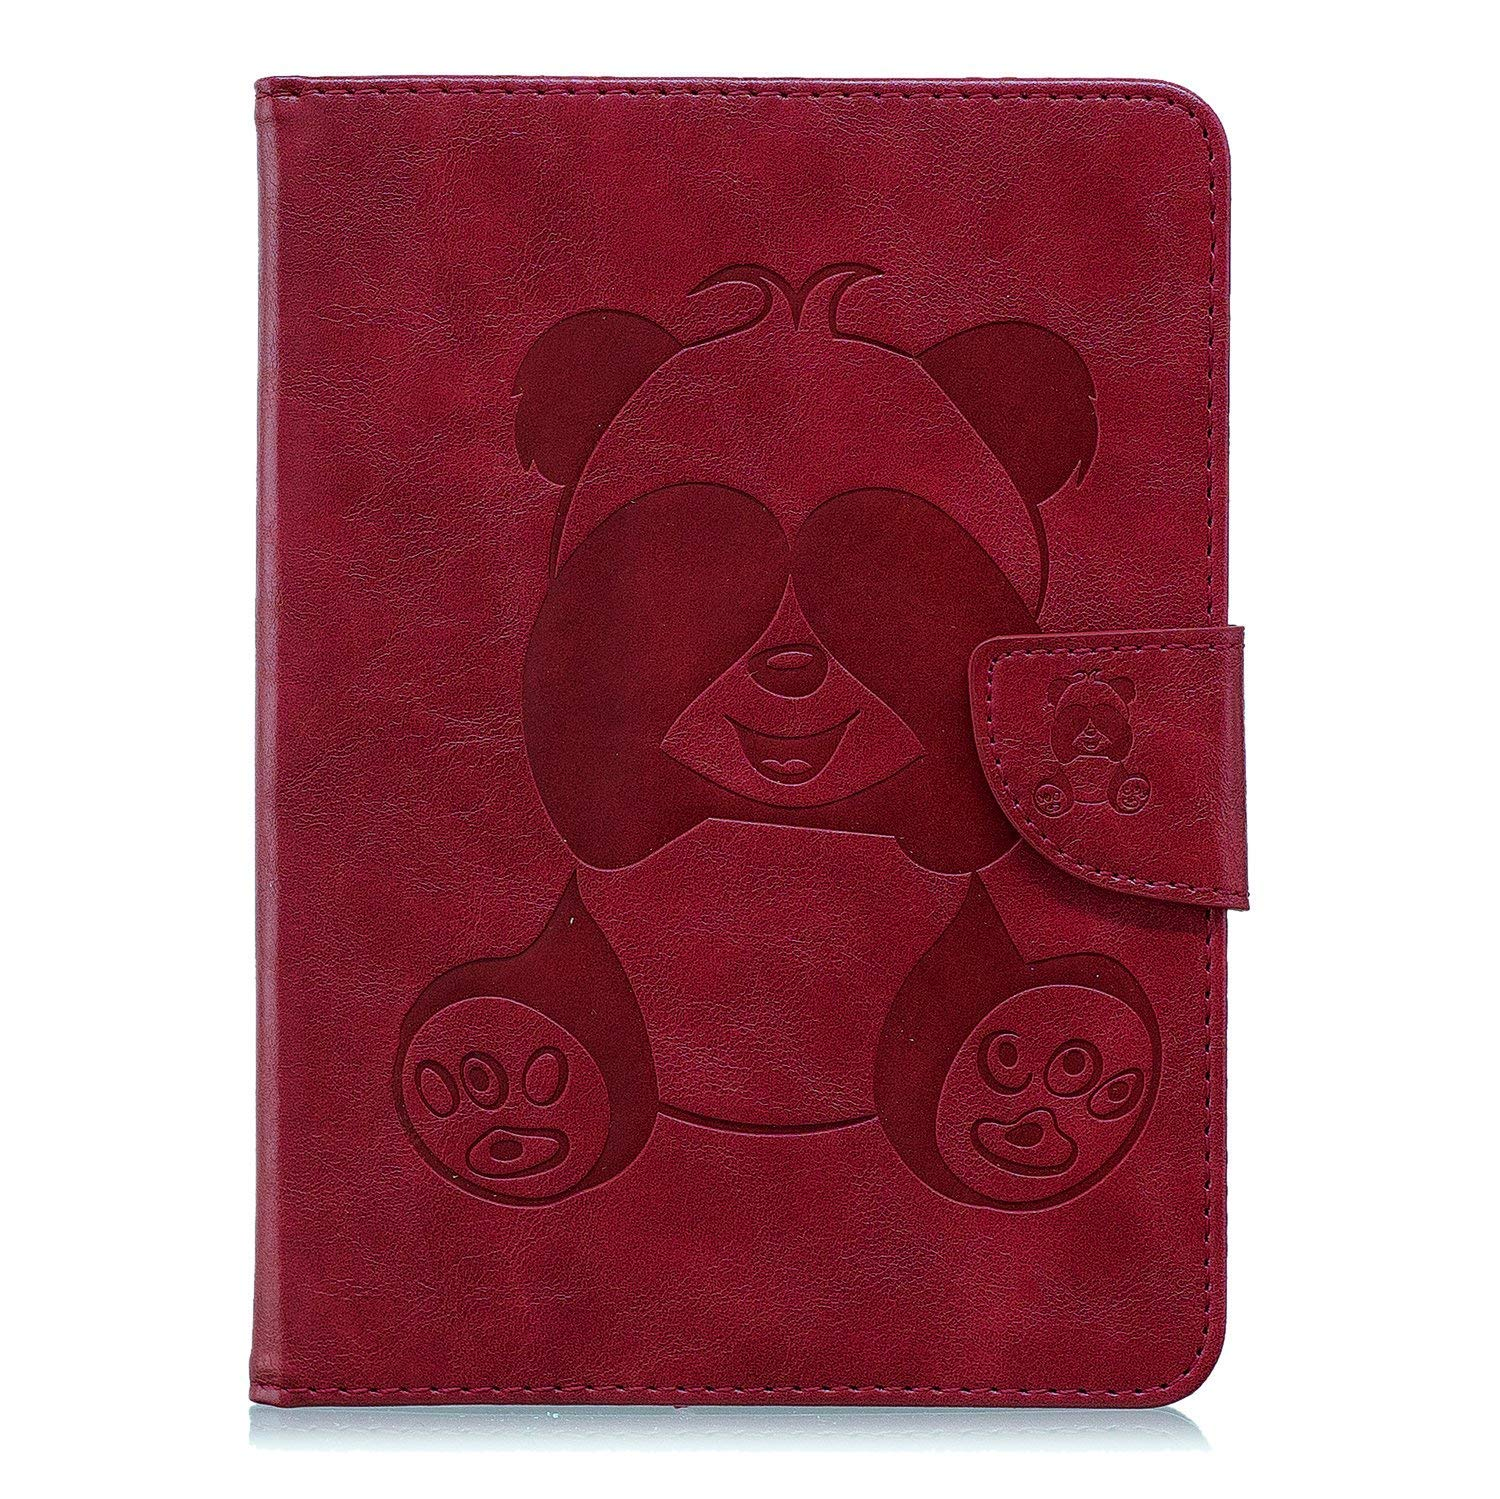 Lederhülle für Amazon Fire HD 10 (7. Generation - 2017), Fire HD 10 2017 Hülle Case, Ekakashop Ultradünn Cute Grau Panda Muster Smart Cover Magnetverschluss PU Leder Schale Ständer Flip Wallet Case Etui Cover TPU Innere Hülle mit Standfunktion / Auto Sleep